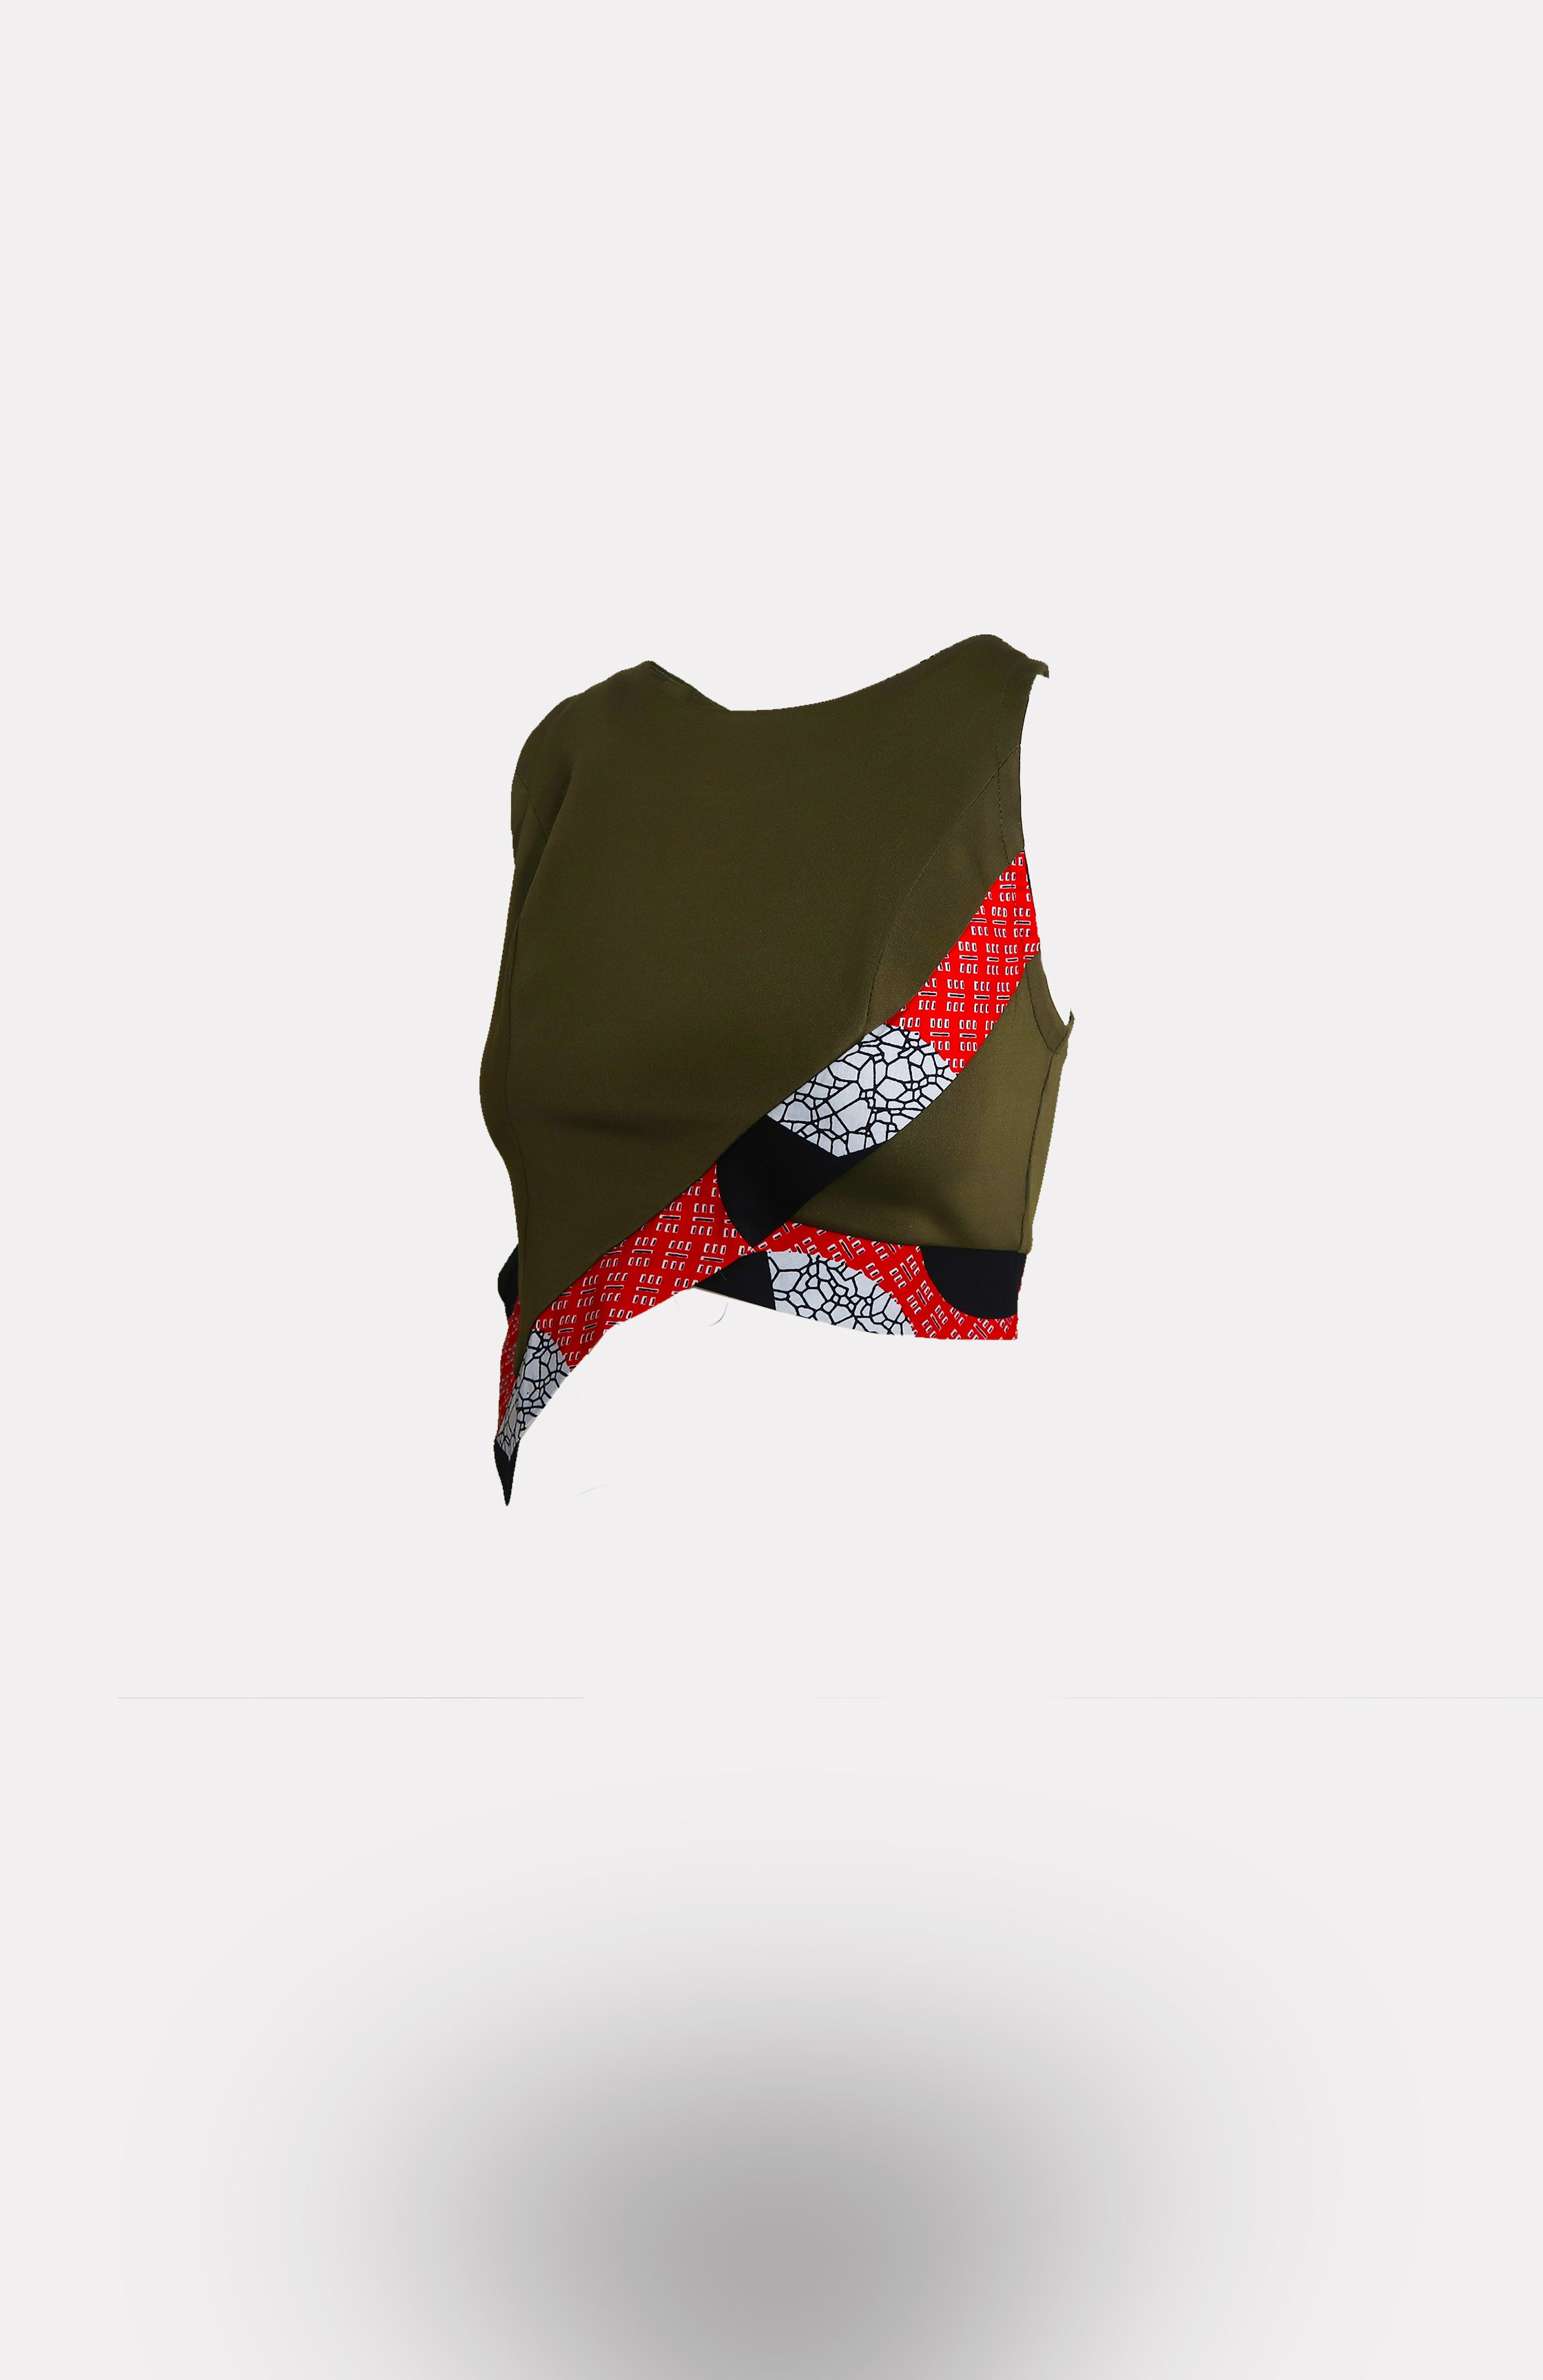 Envelope Crop Top in Army Green w/ Une Edging African Print - African Wax - Ankara - Chinero Nnamani